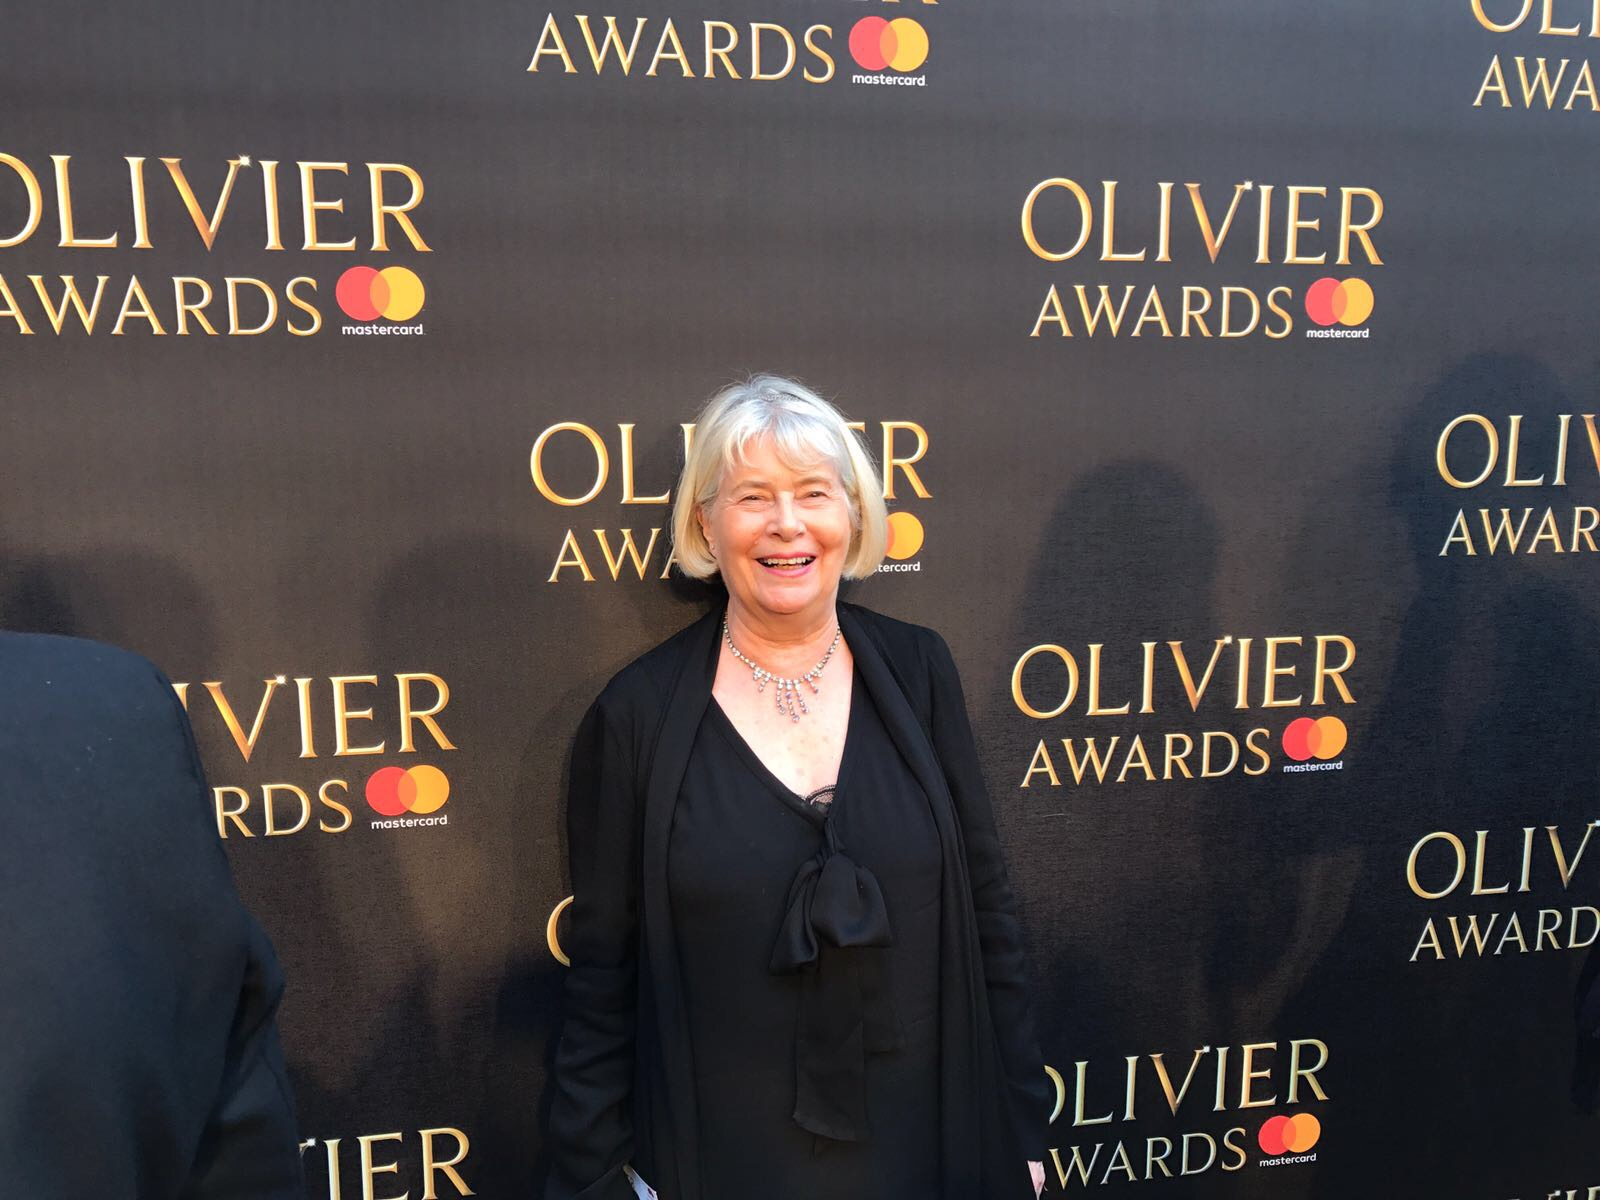 Veronica from the made tourism team at the Olivier Awards 2017